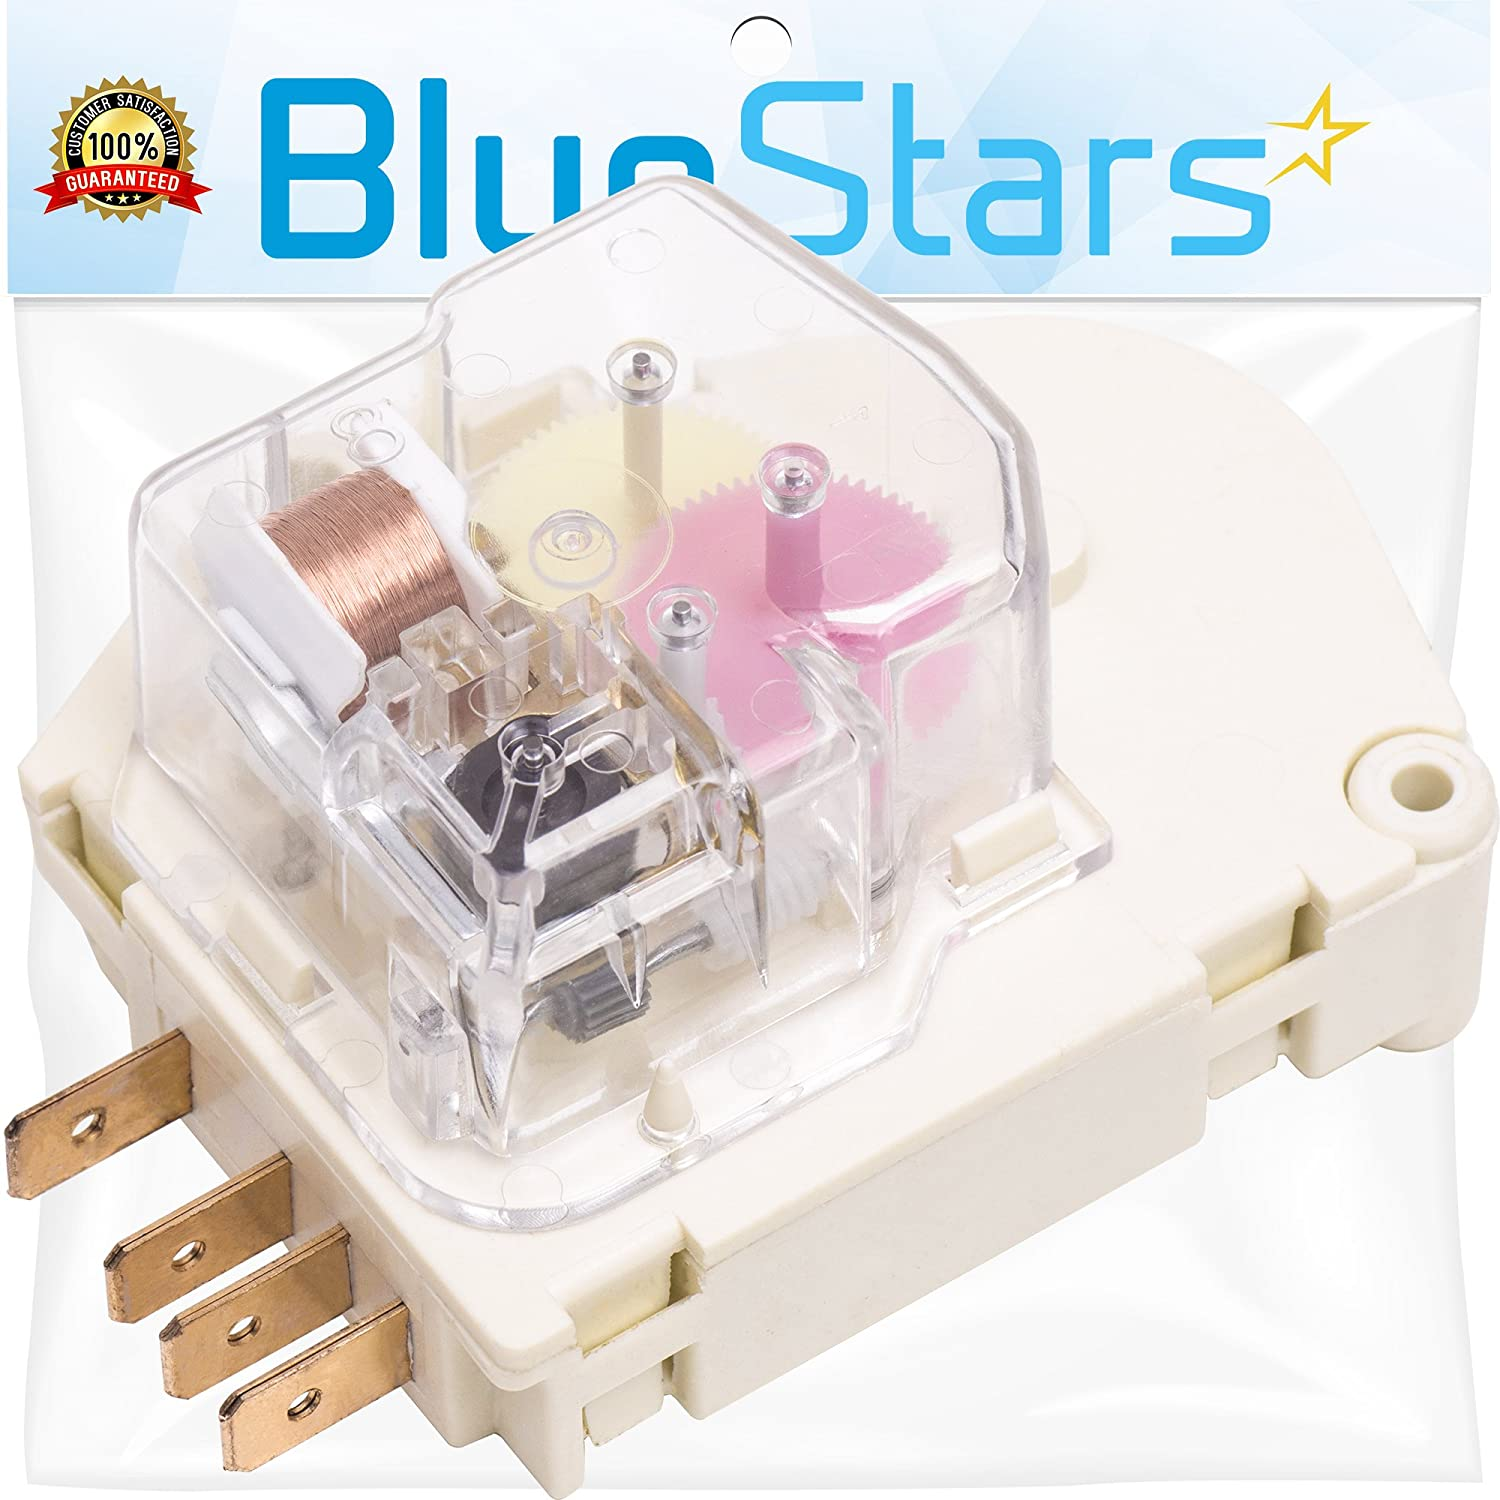 Ultra Durable 215846602 Refrigerator Defrost Timer Replacement Part by Blue Stars – Exact Fit For Frigidaire & Kenmore Refrigerators – Replaces 215846606 240371001 241621501 AP2111929 PS423801